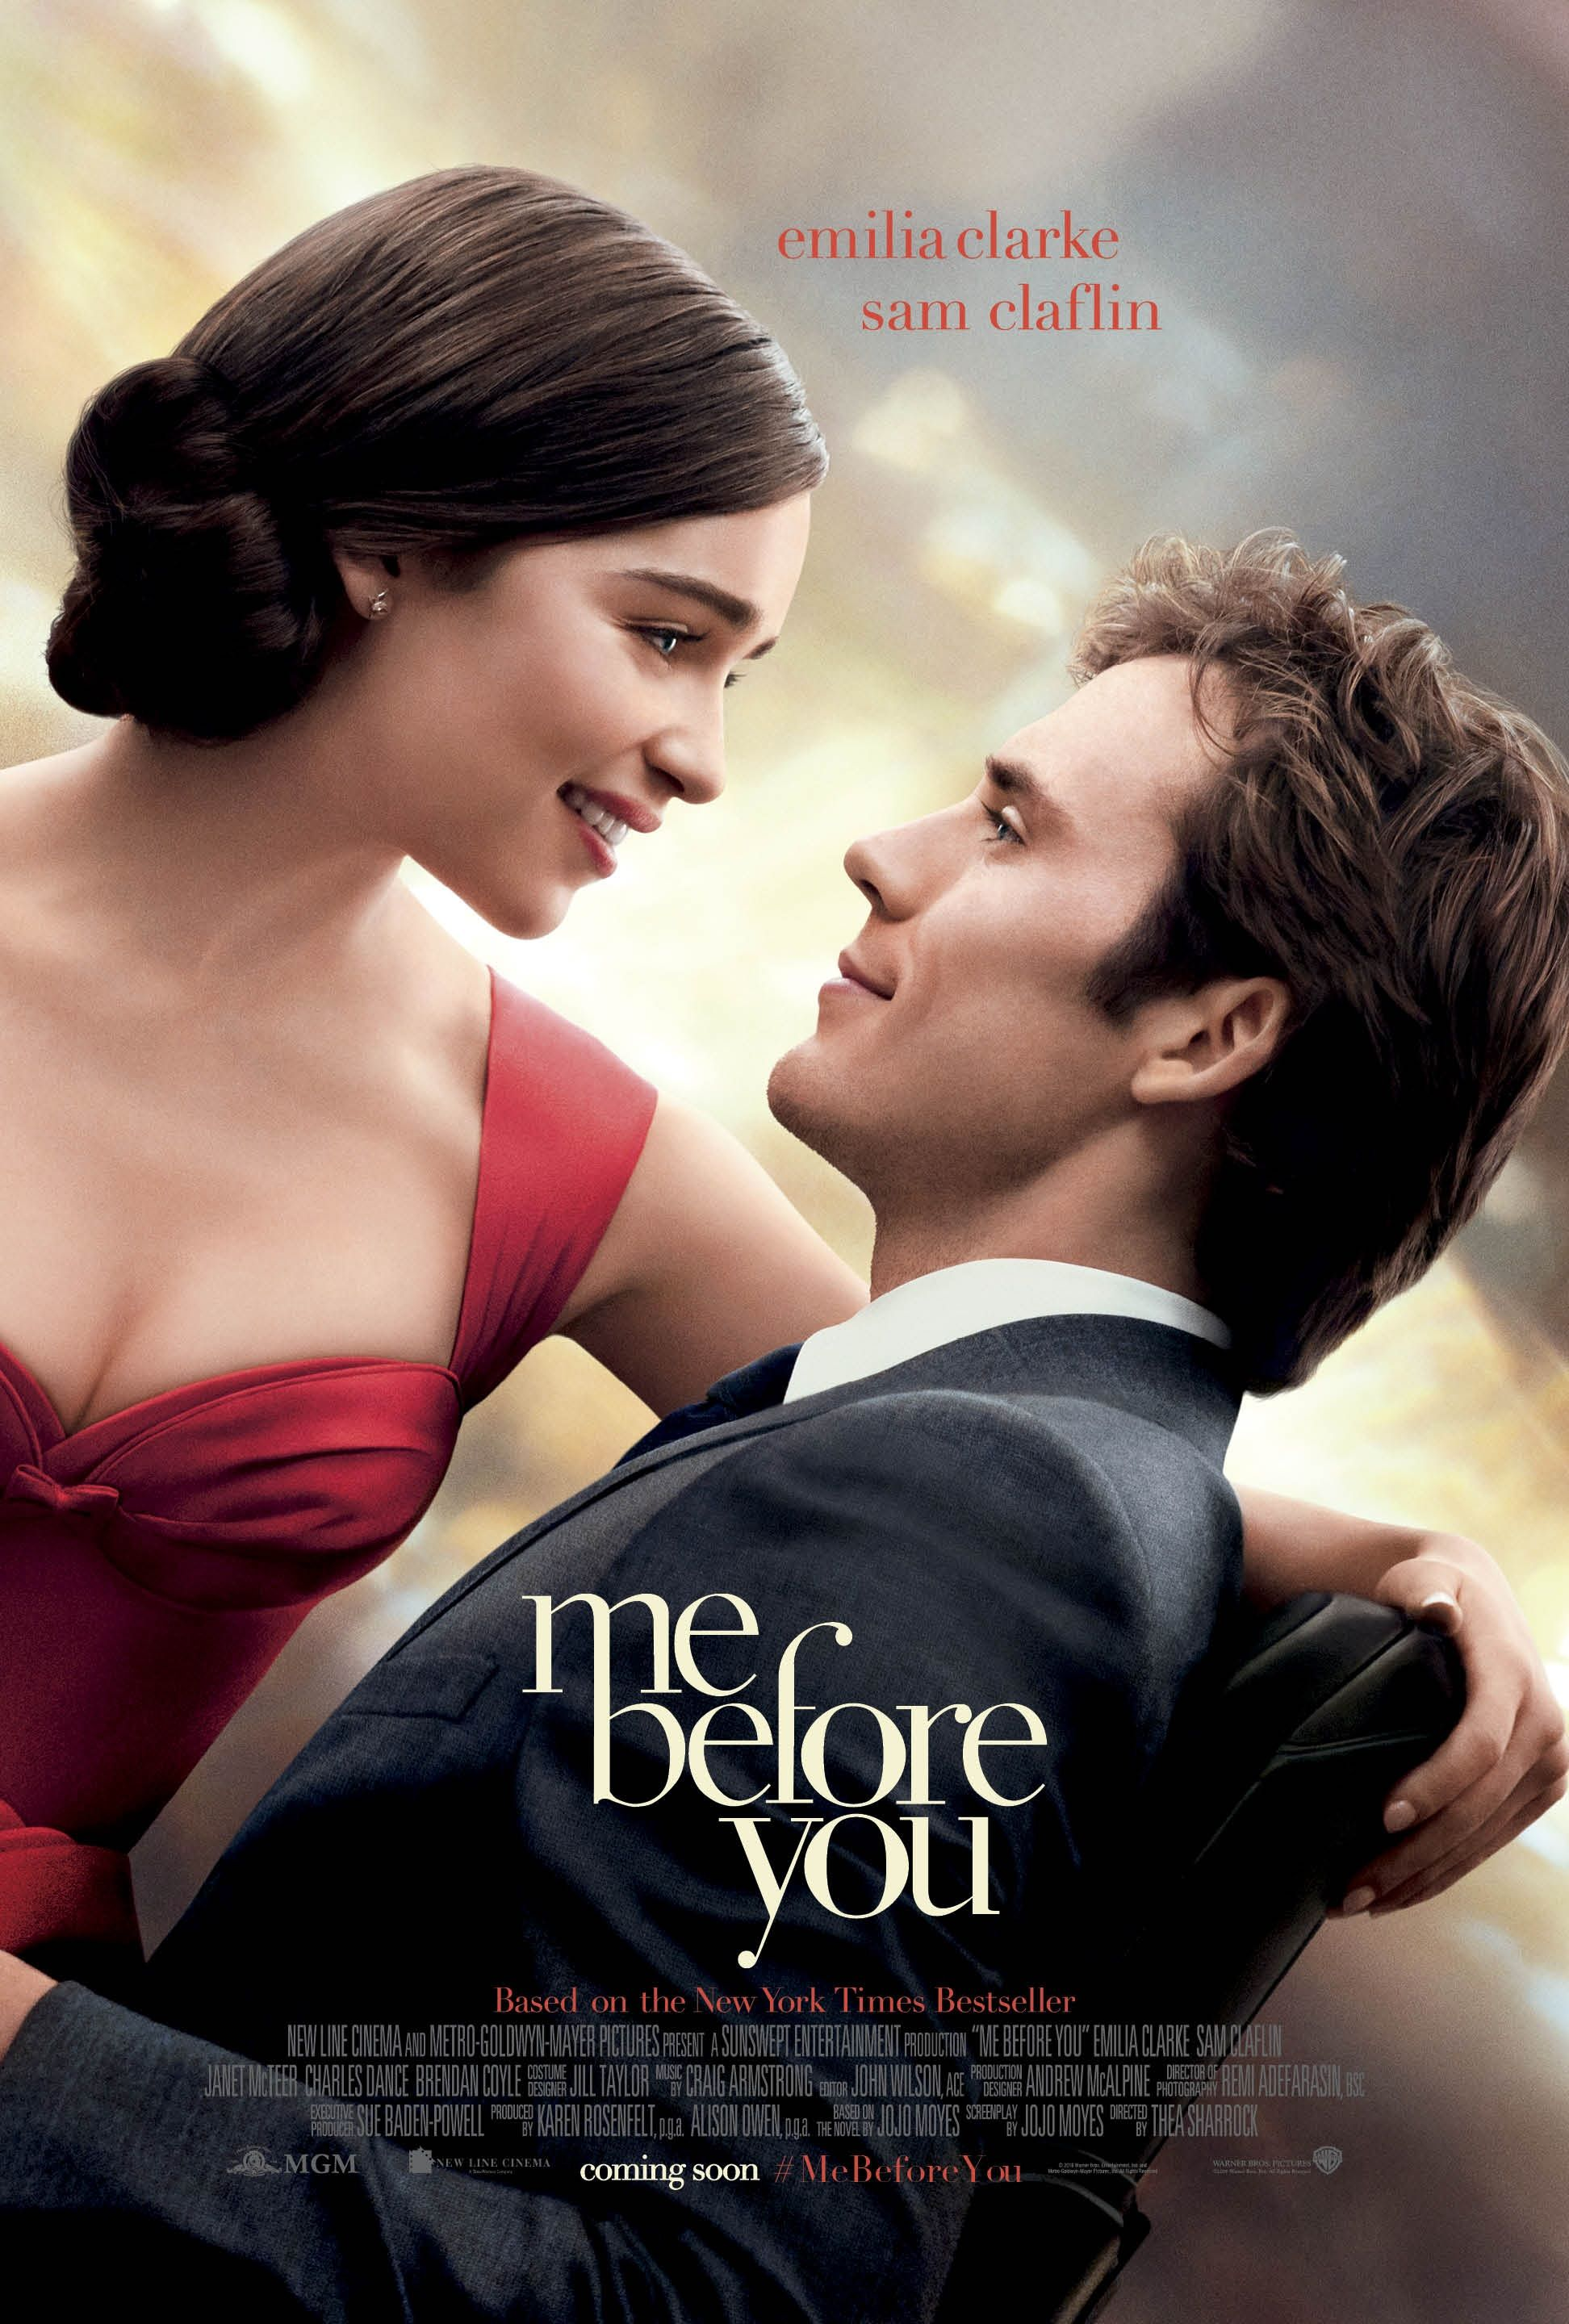 Hd wallpaper you and me - Best Wallpaper Gallery With Me Before You 2016 1944 X 2880 And